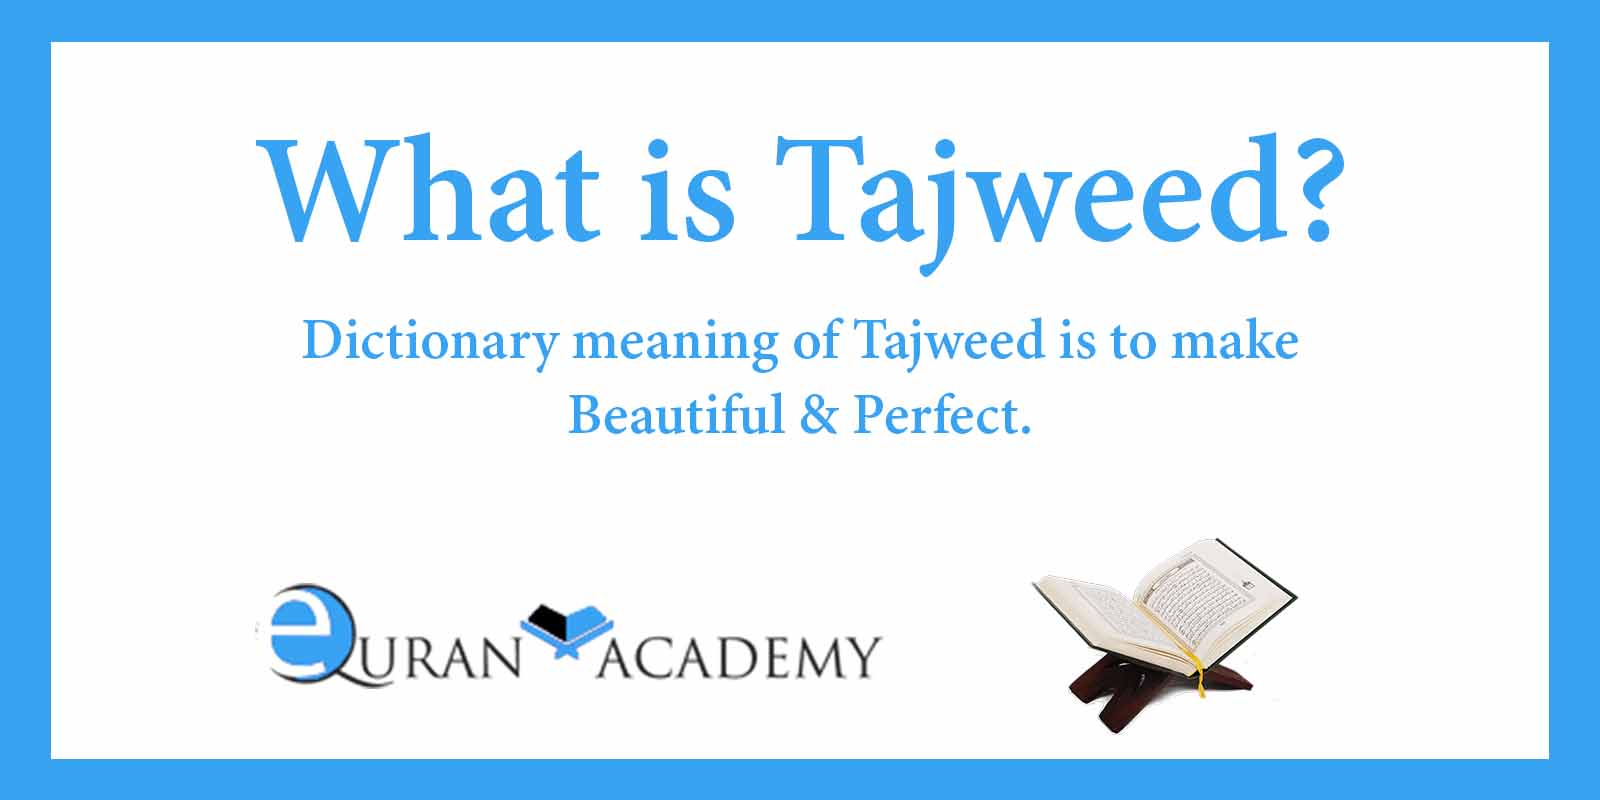 What is Tajweed?